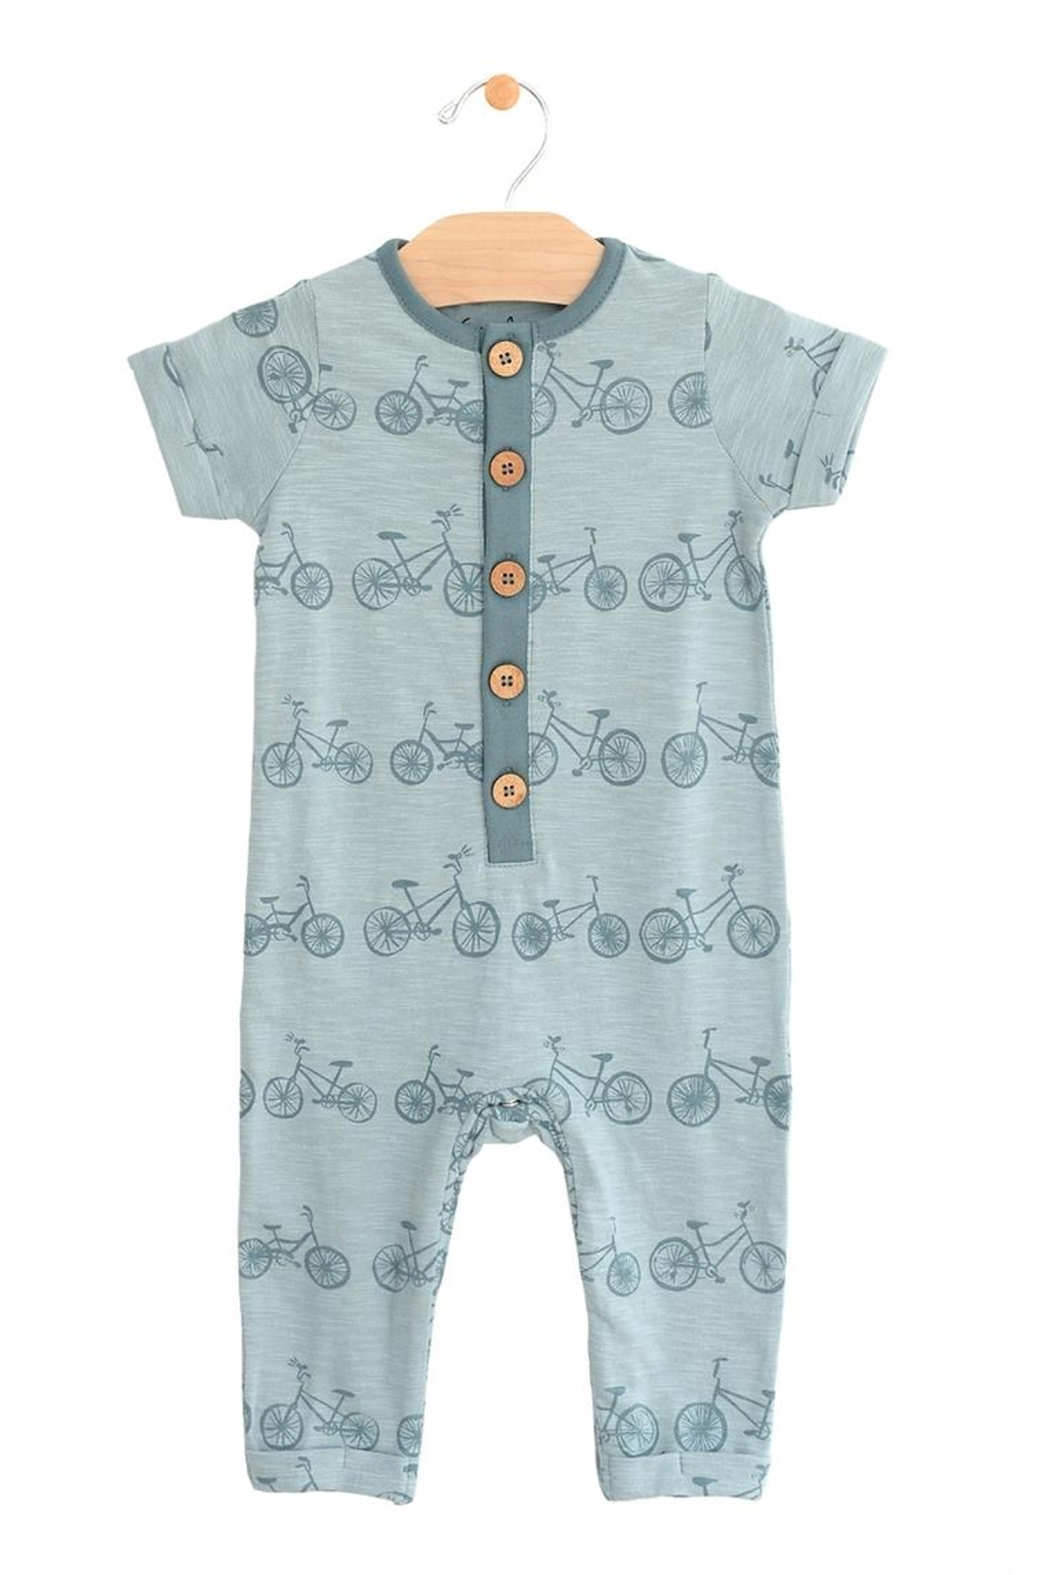 City Mouse Bike Long Bottom Romper - Front Cropped Image